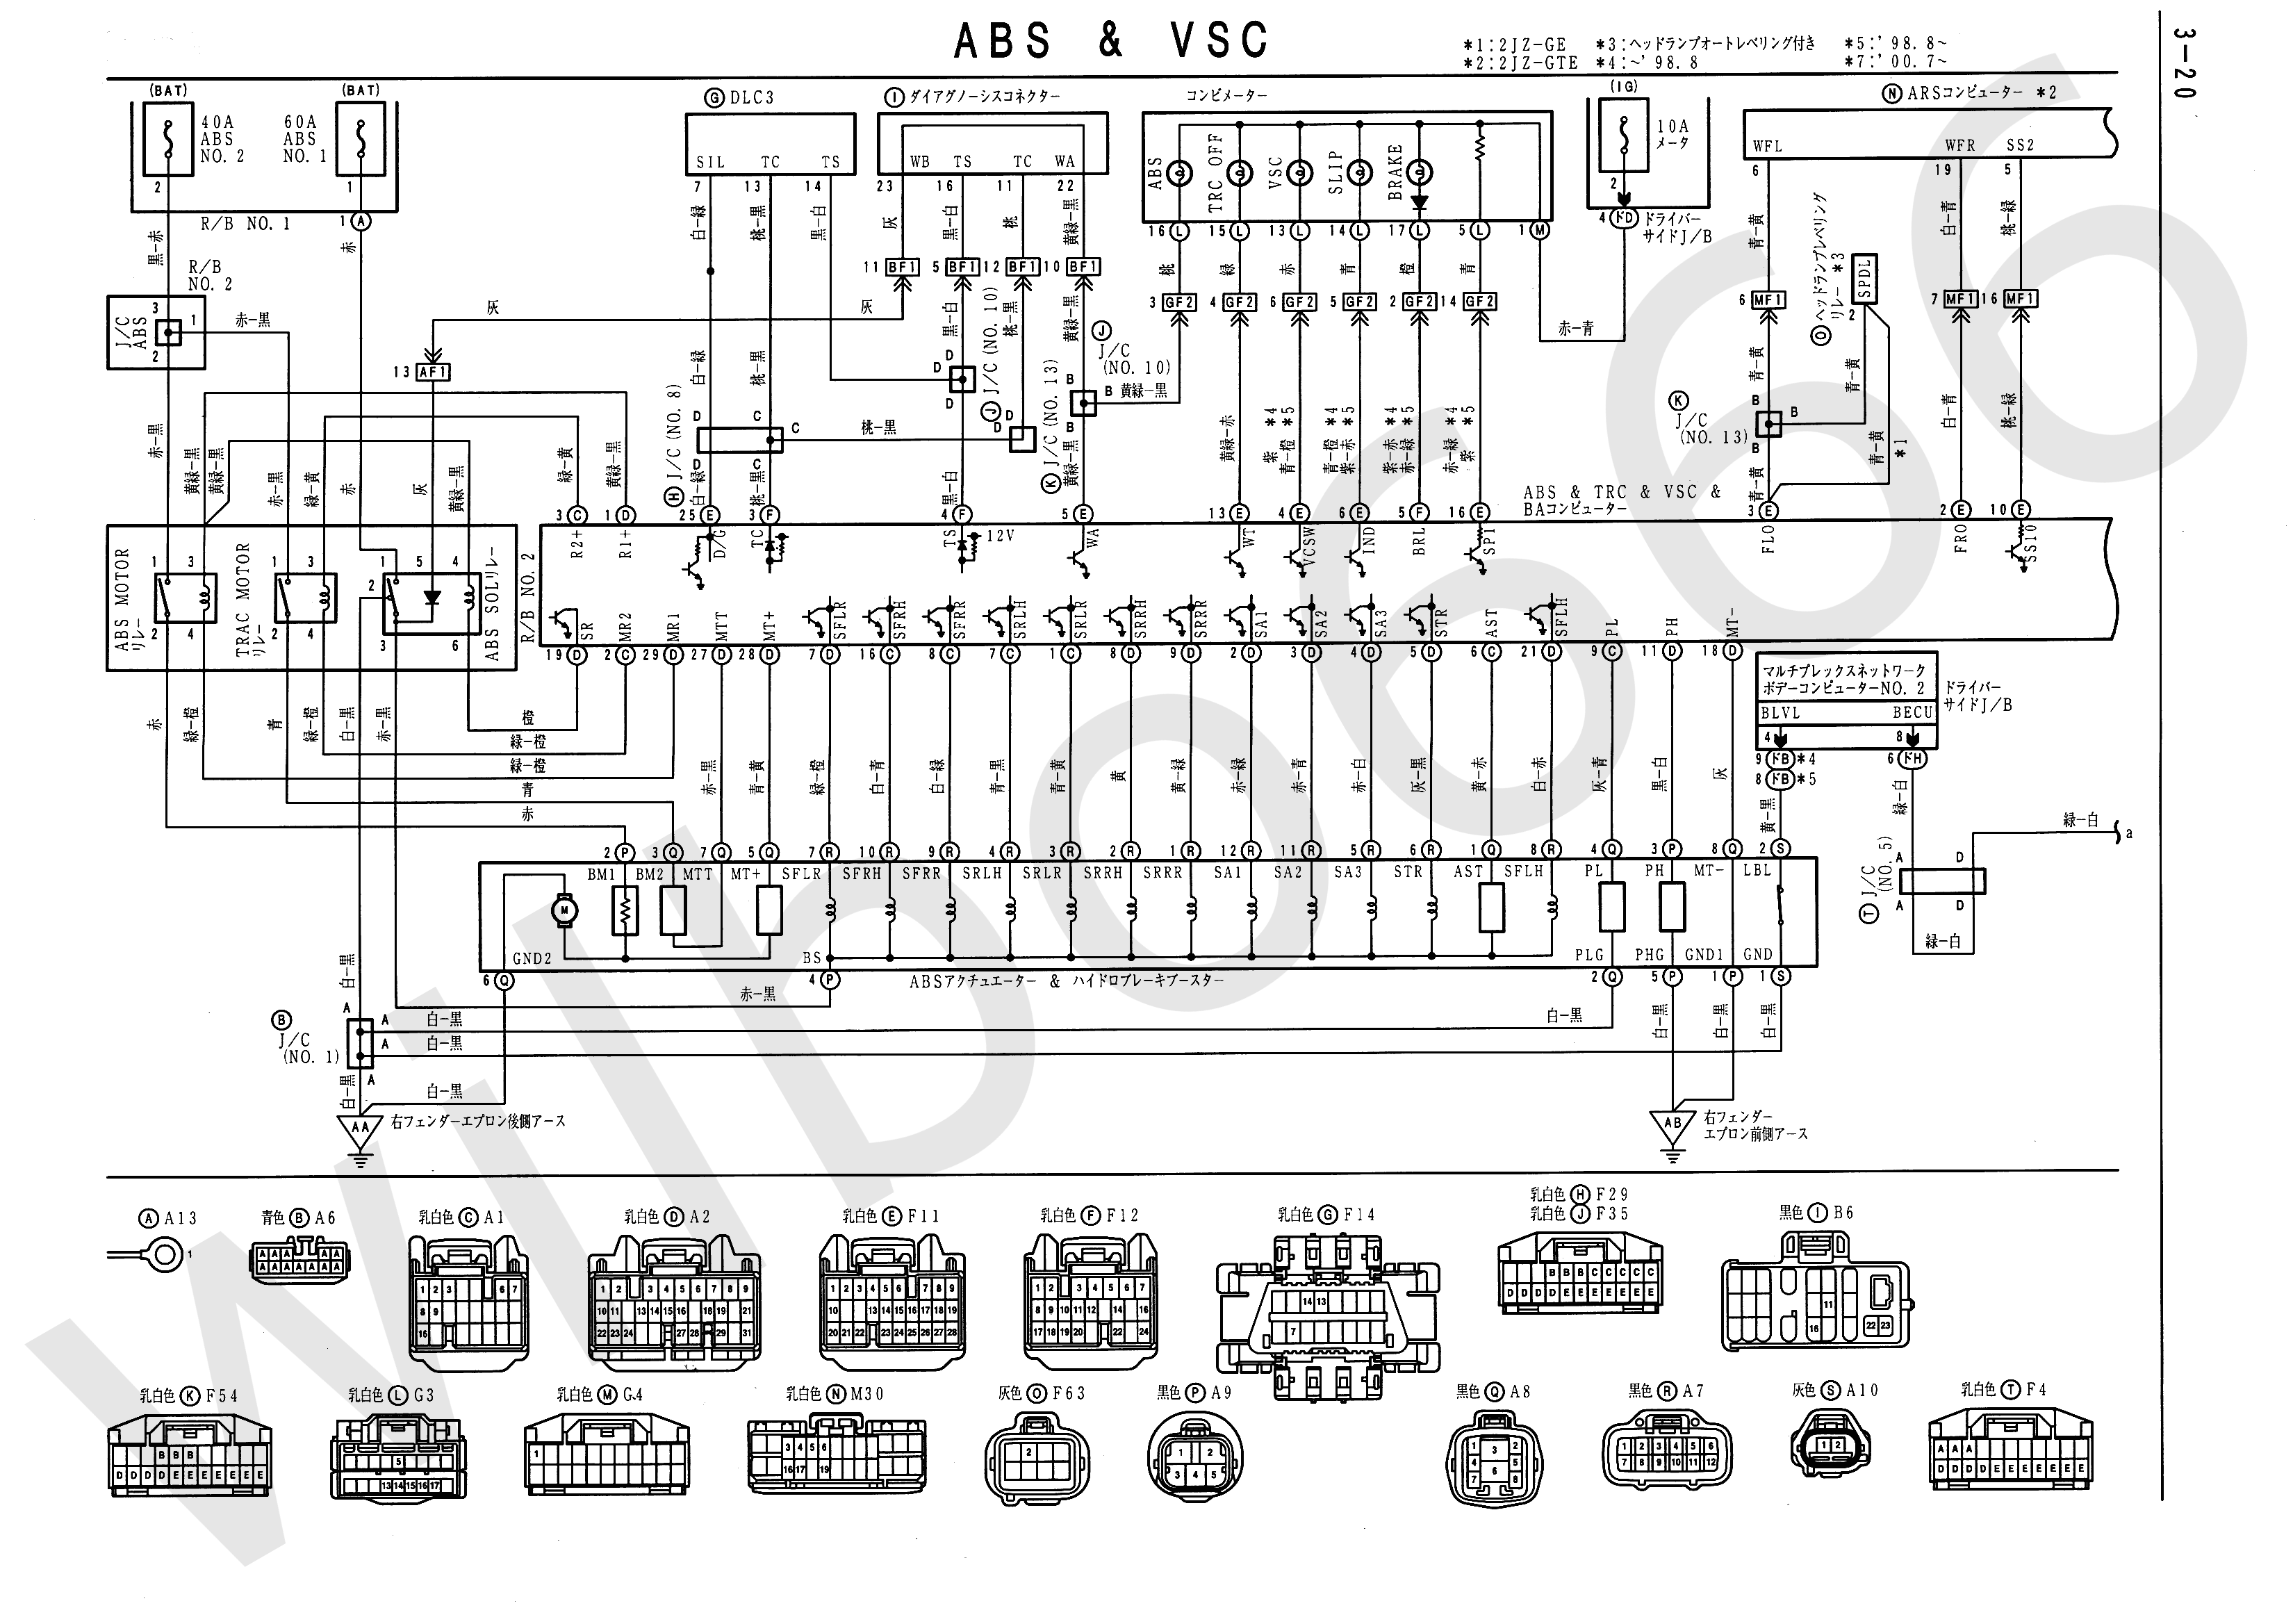 Astounding Daihatsu S65 Wiring Diagram Honda 350 Ranger Engine Diagram